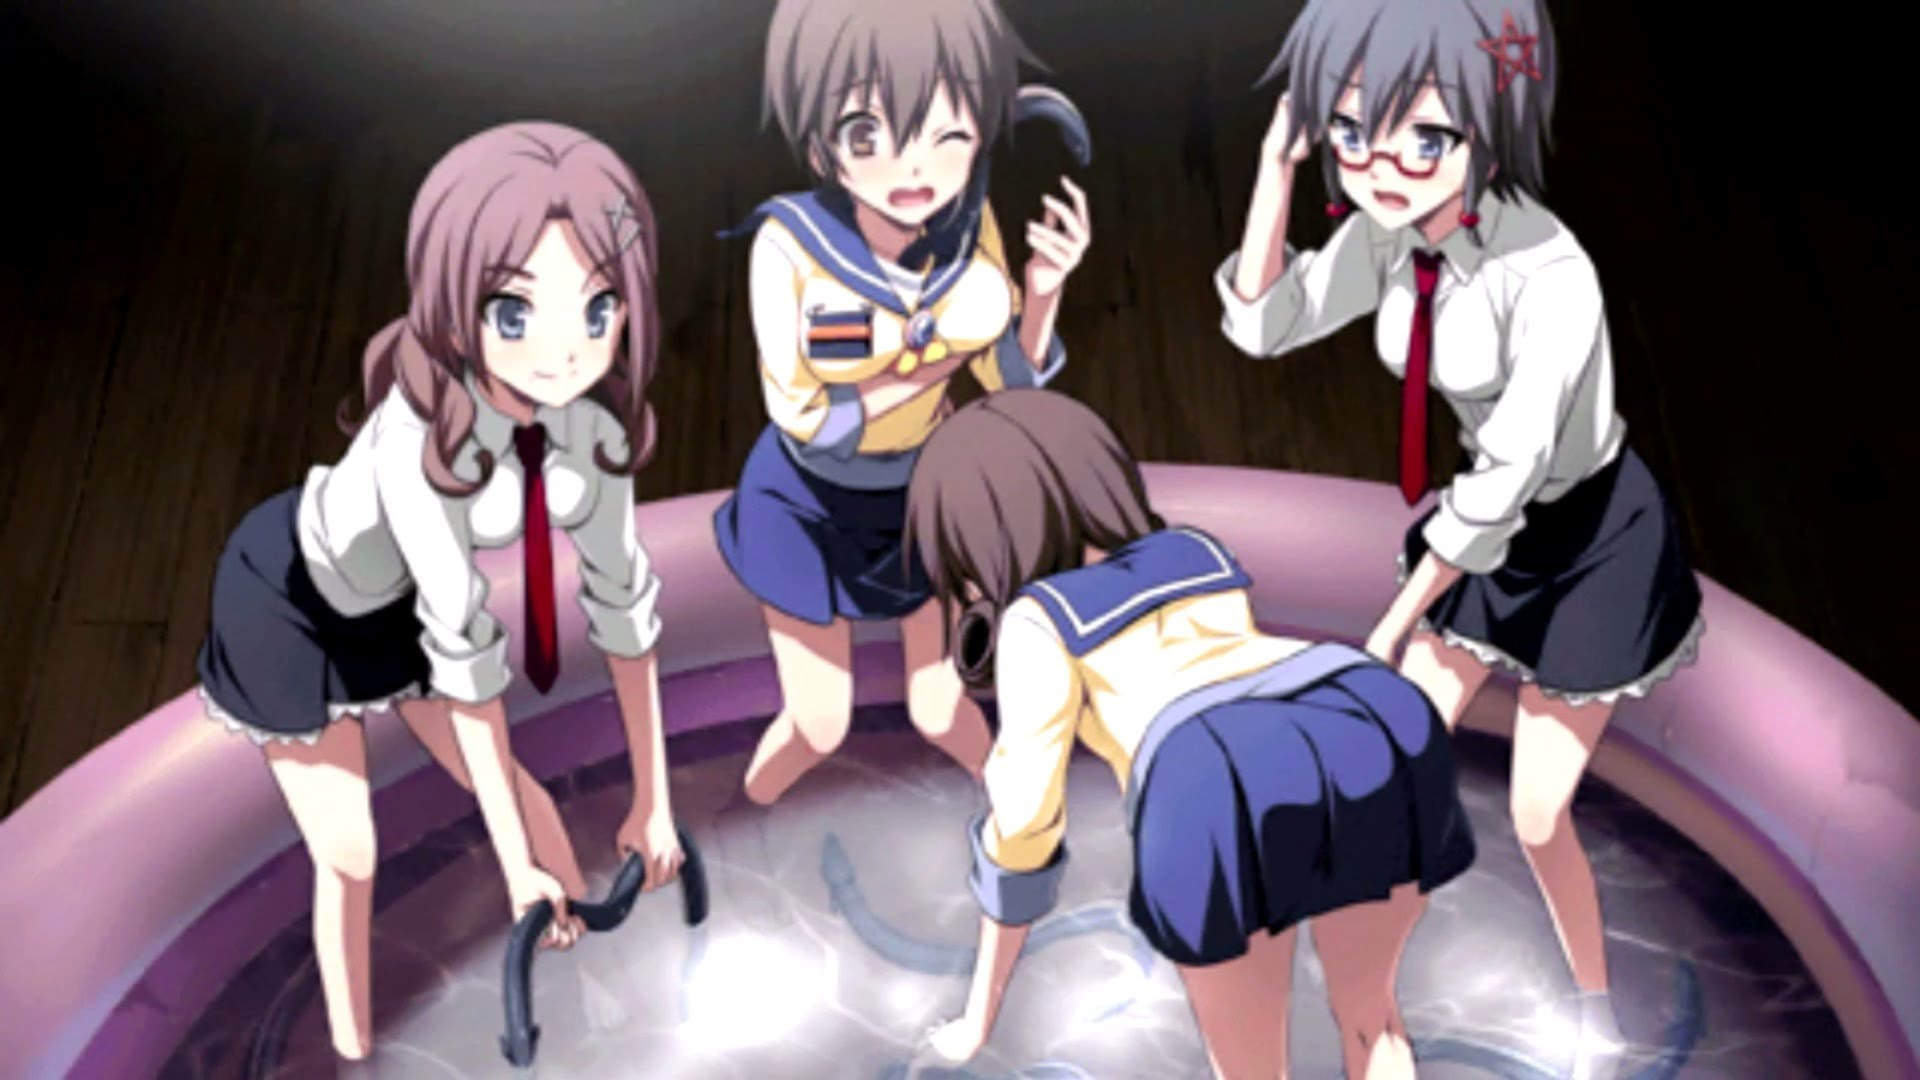 High Resolution Wallpaper | Corpse Party 1920x1080 px